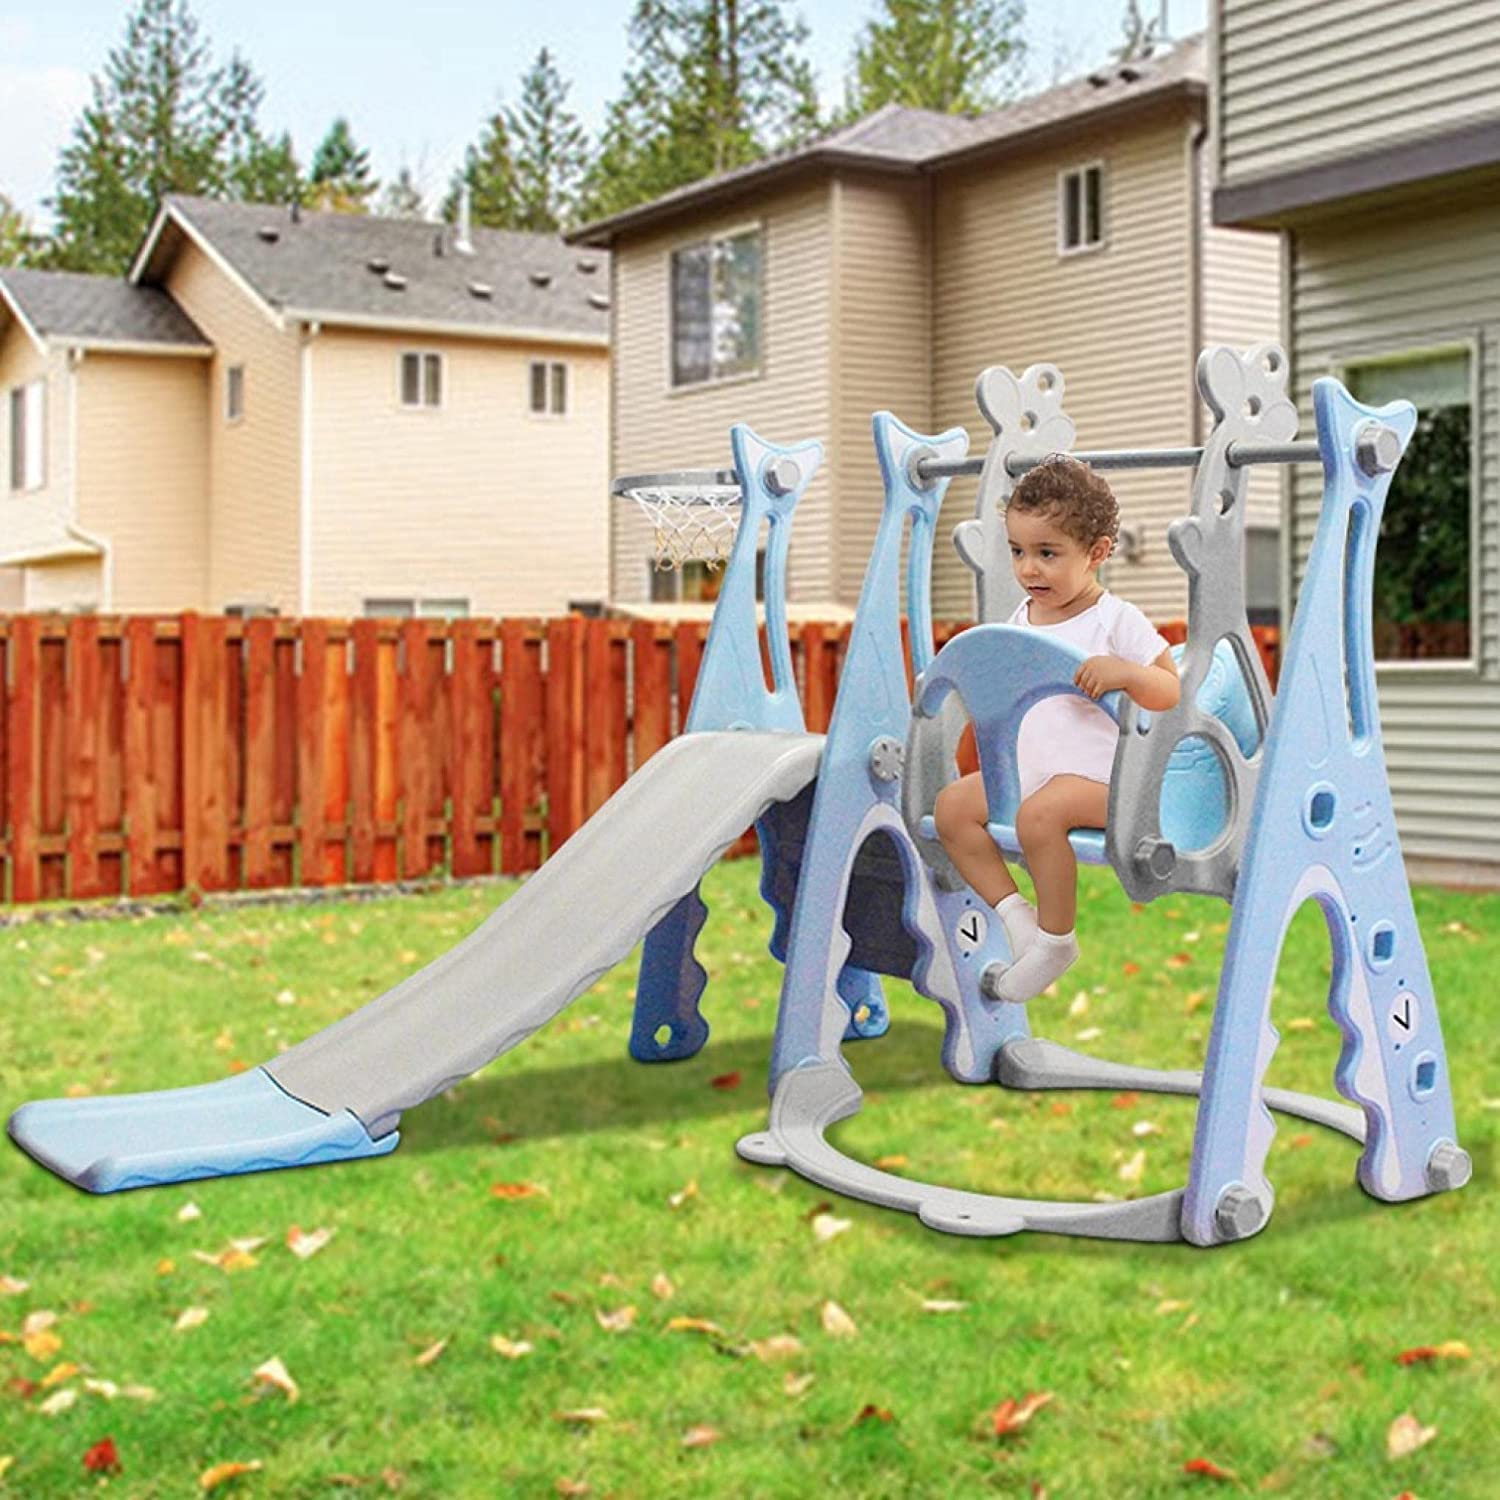 TANGNADE Ship In Quantity limited USA Toddler Slide online shop Sw Set Climber And Swing